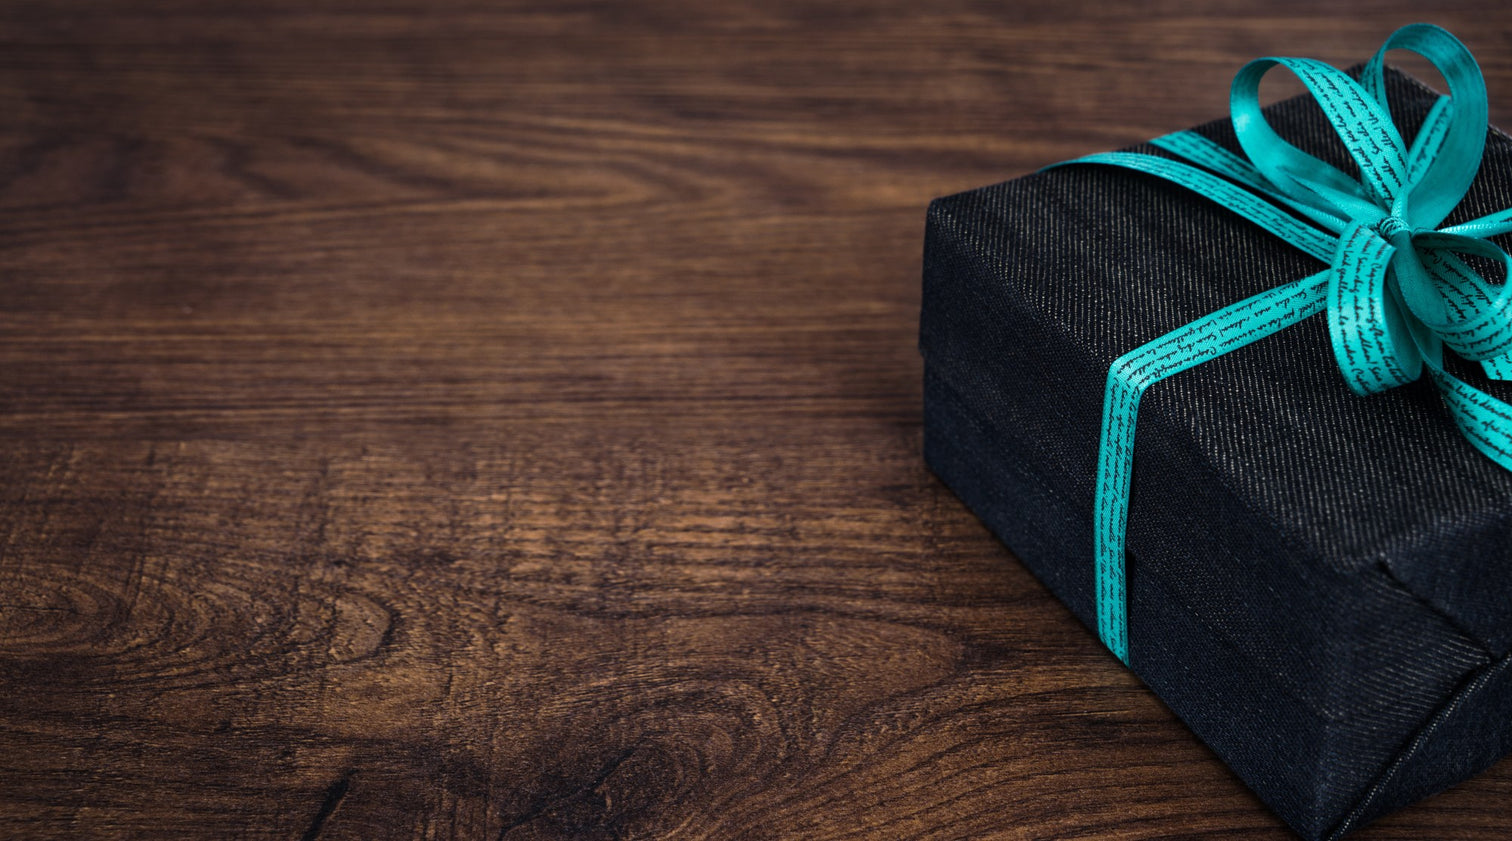 Gift Giving Made Easy: What to Get for the Man in Your Life